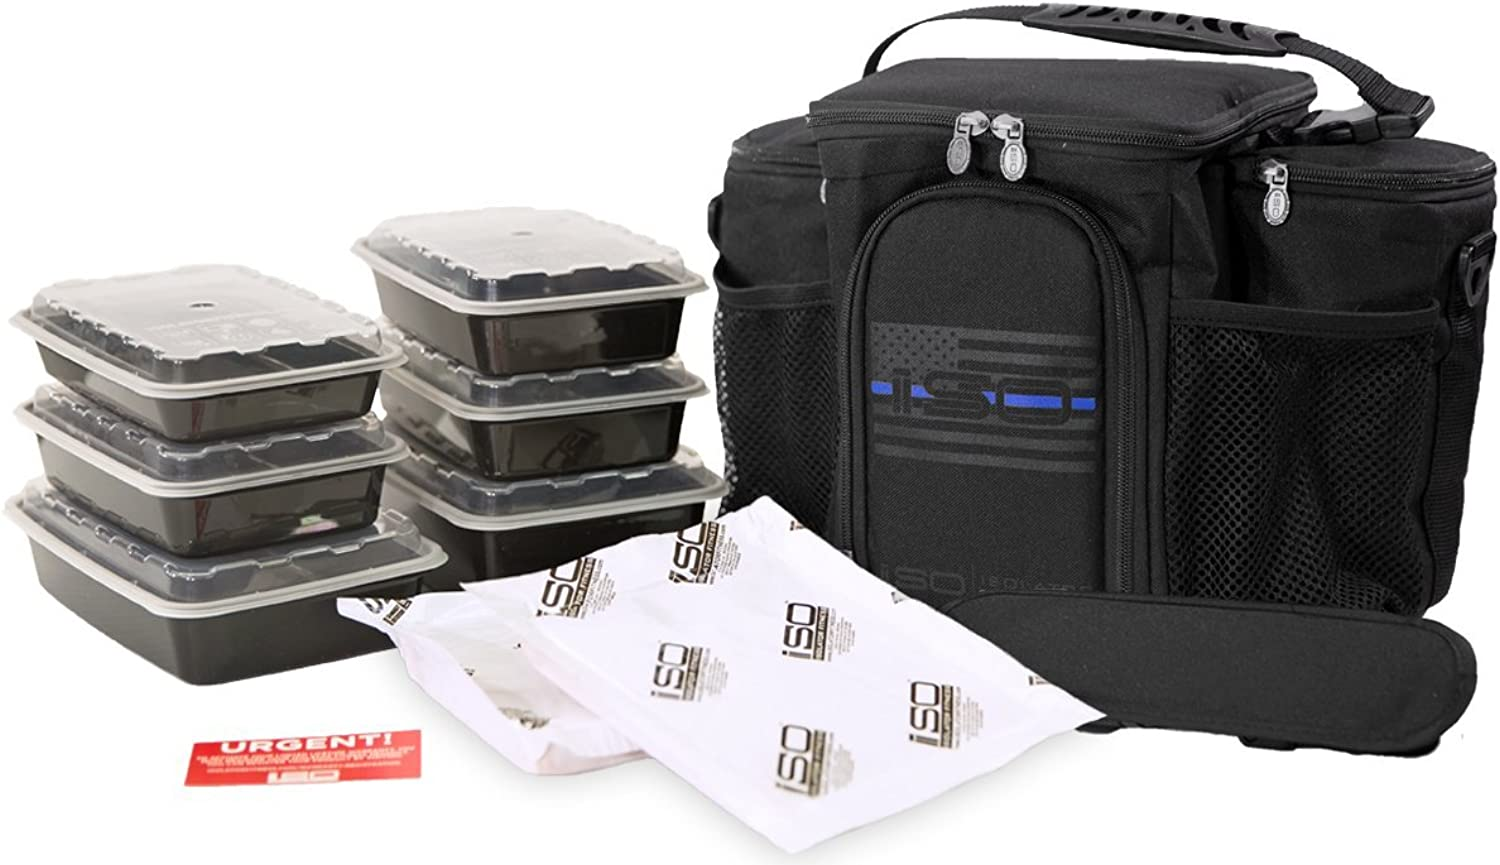 Thin bluee Line 3 Meal Prep Bag Kit - Insulated Lunch Bag Cooler with 6 Reusable Meal Prep Containers, 2 Ice Packs & Shoulder Strap - MADE IN USA